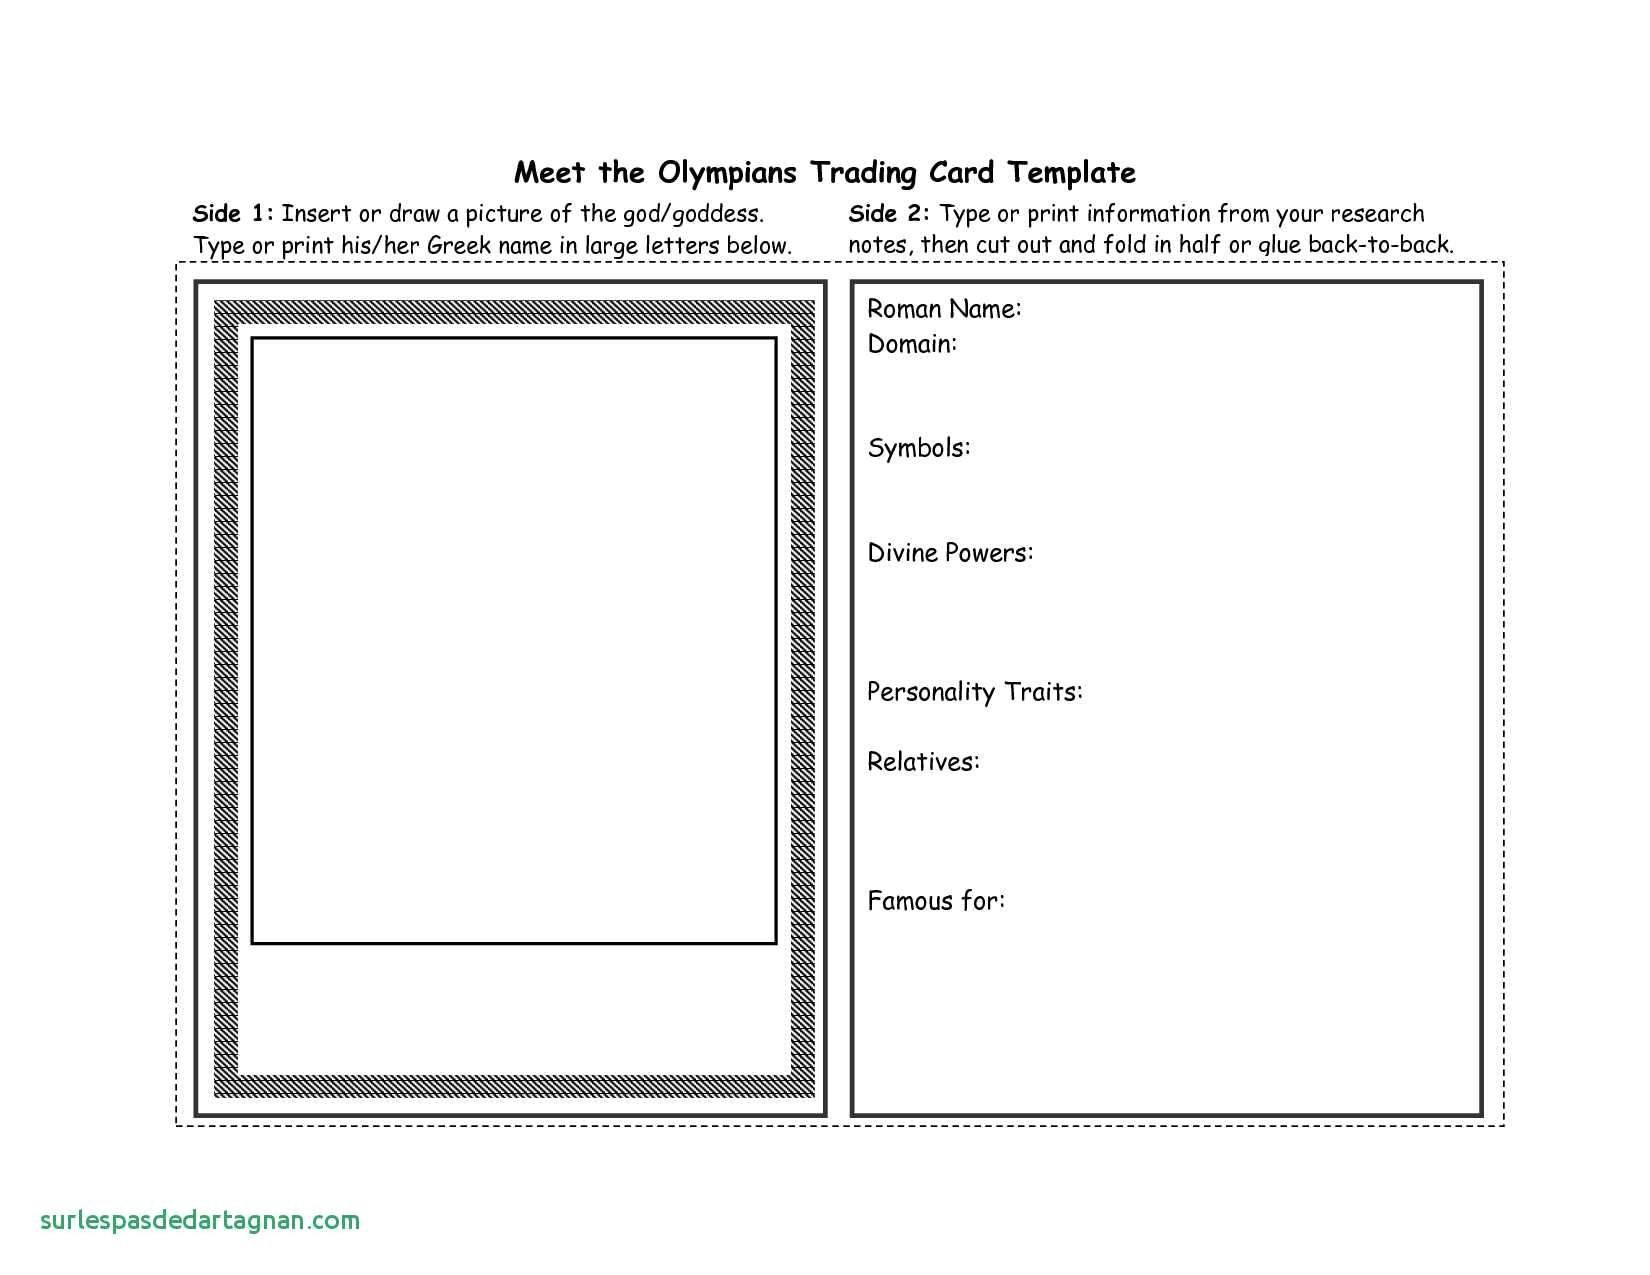 Baseball Trading Card Template Classic Word Blank  Freiburger With Regard To Trading Card Template Word